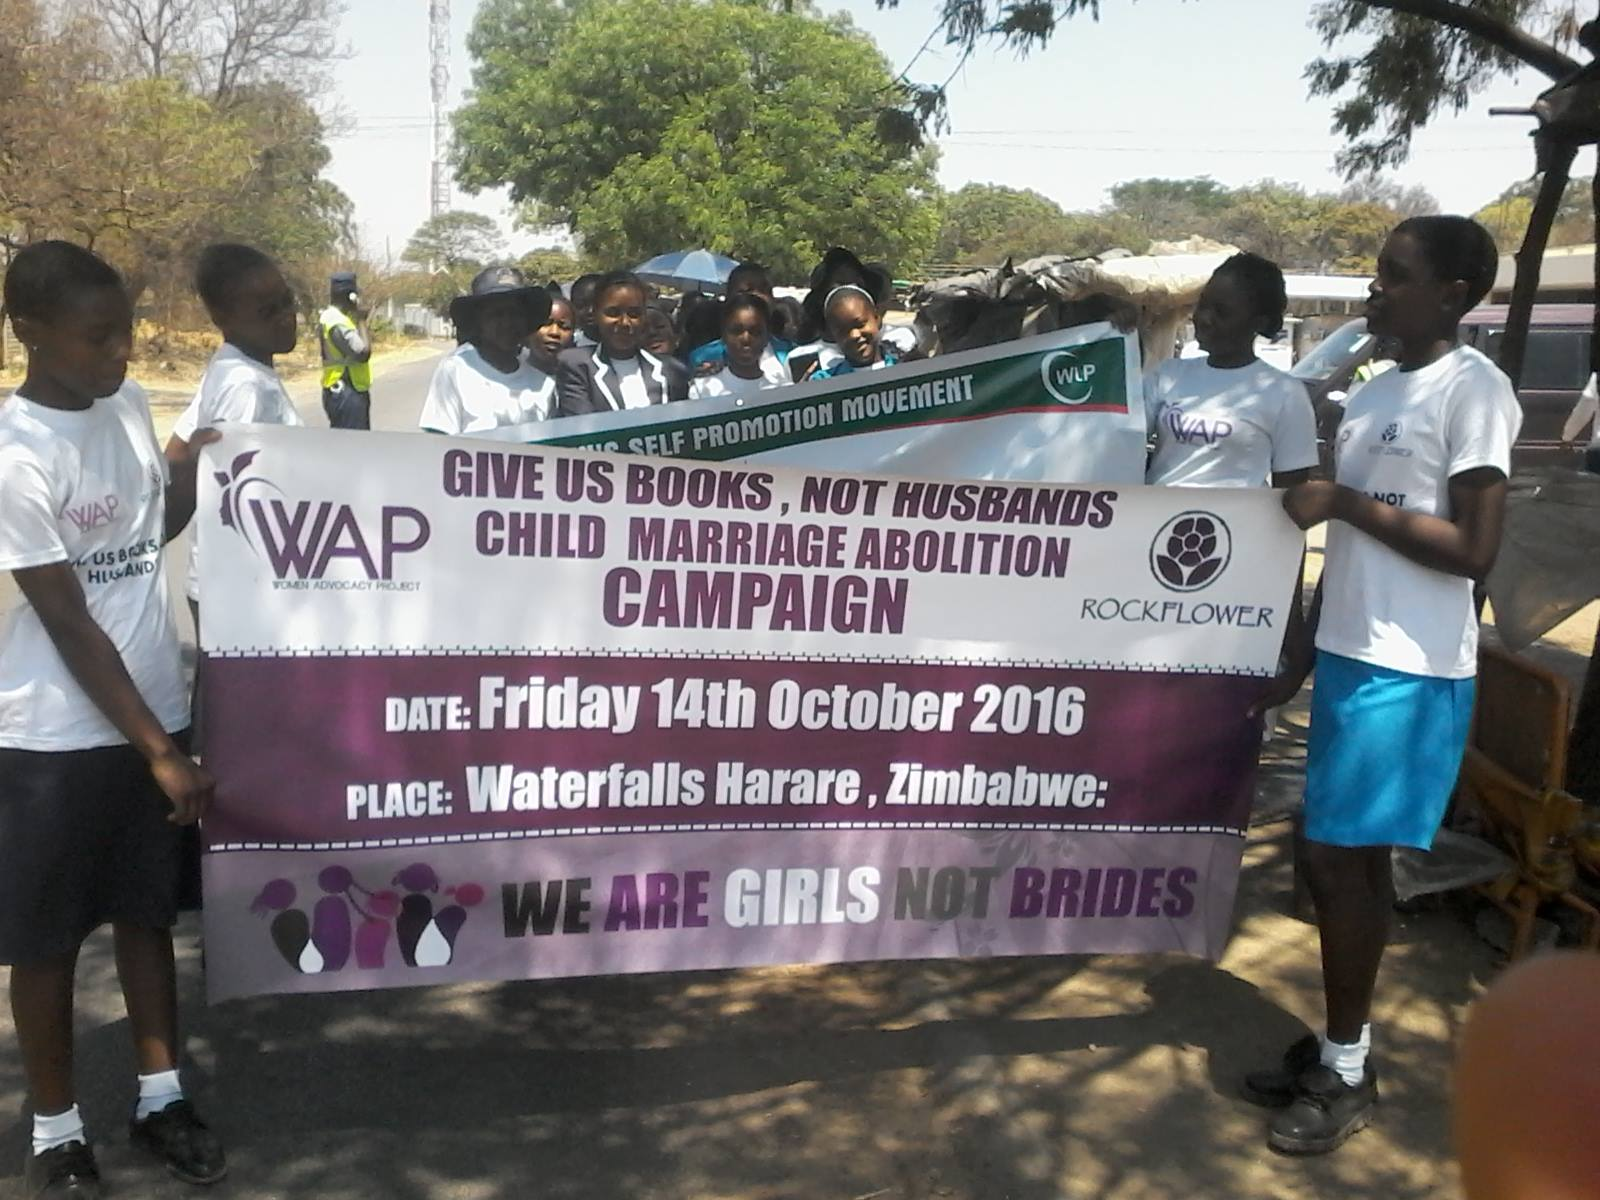 Protesting Child Marriage